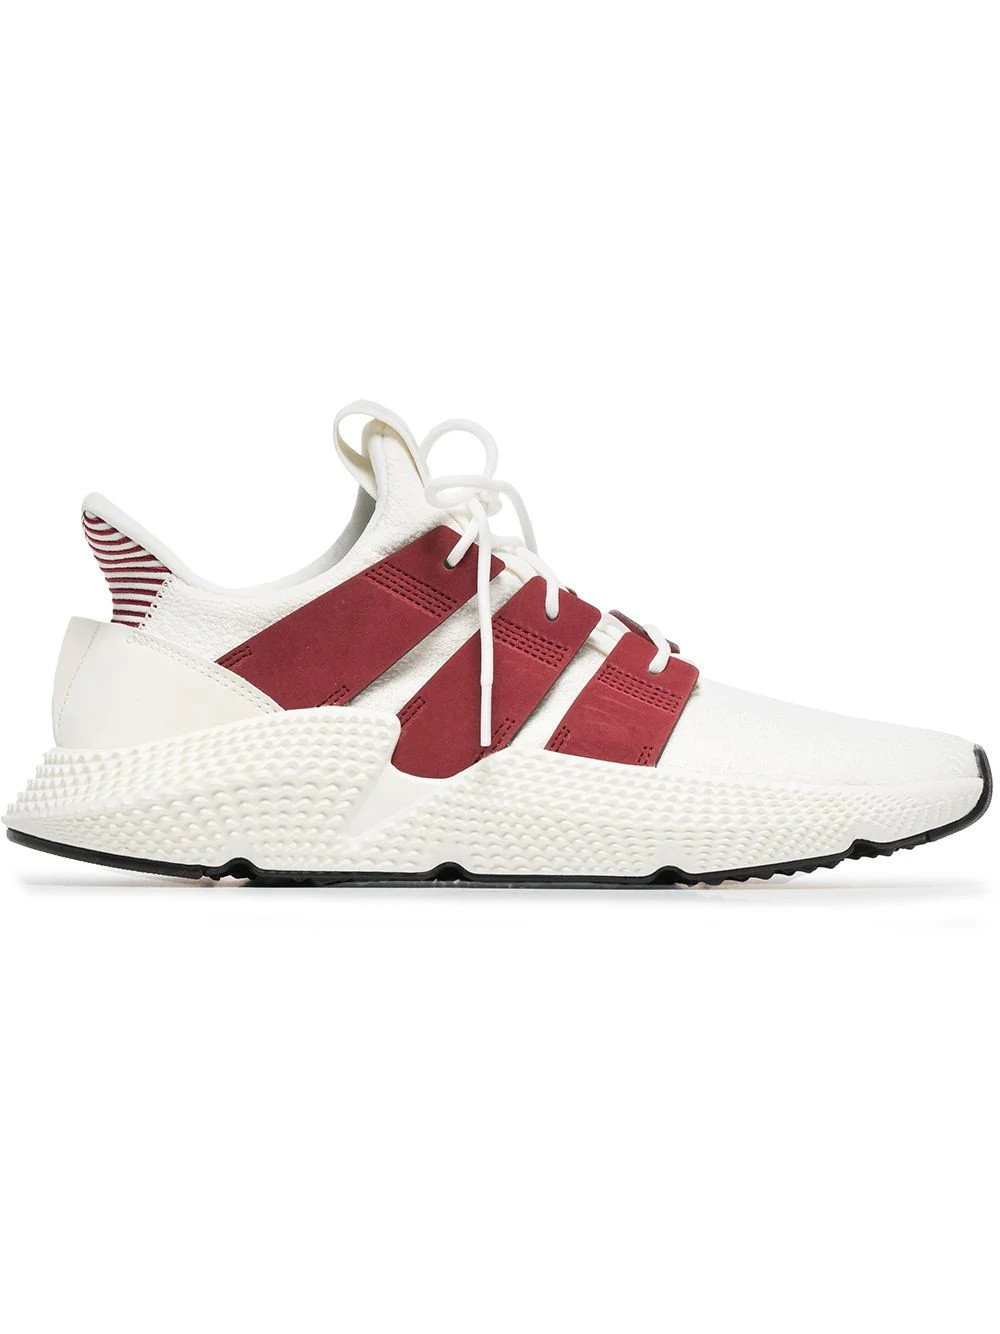 Adidas Originals Prophere | Blancas | Sneakers | D96658